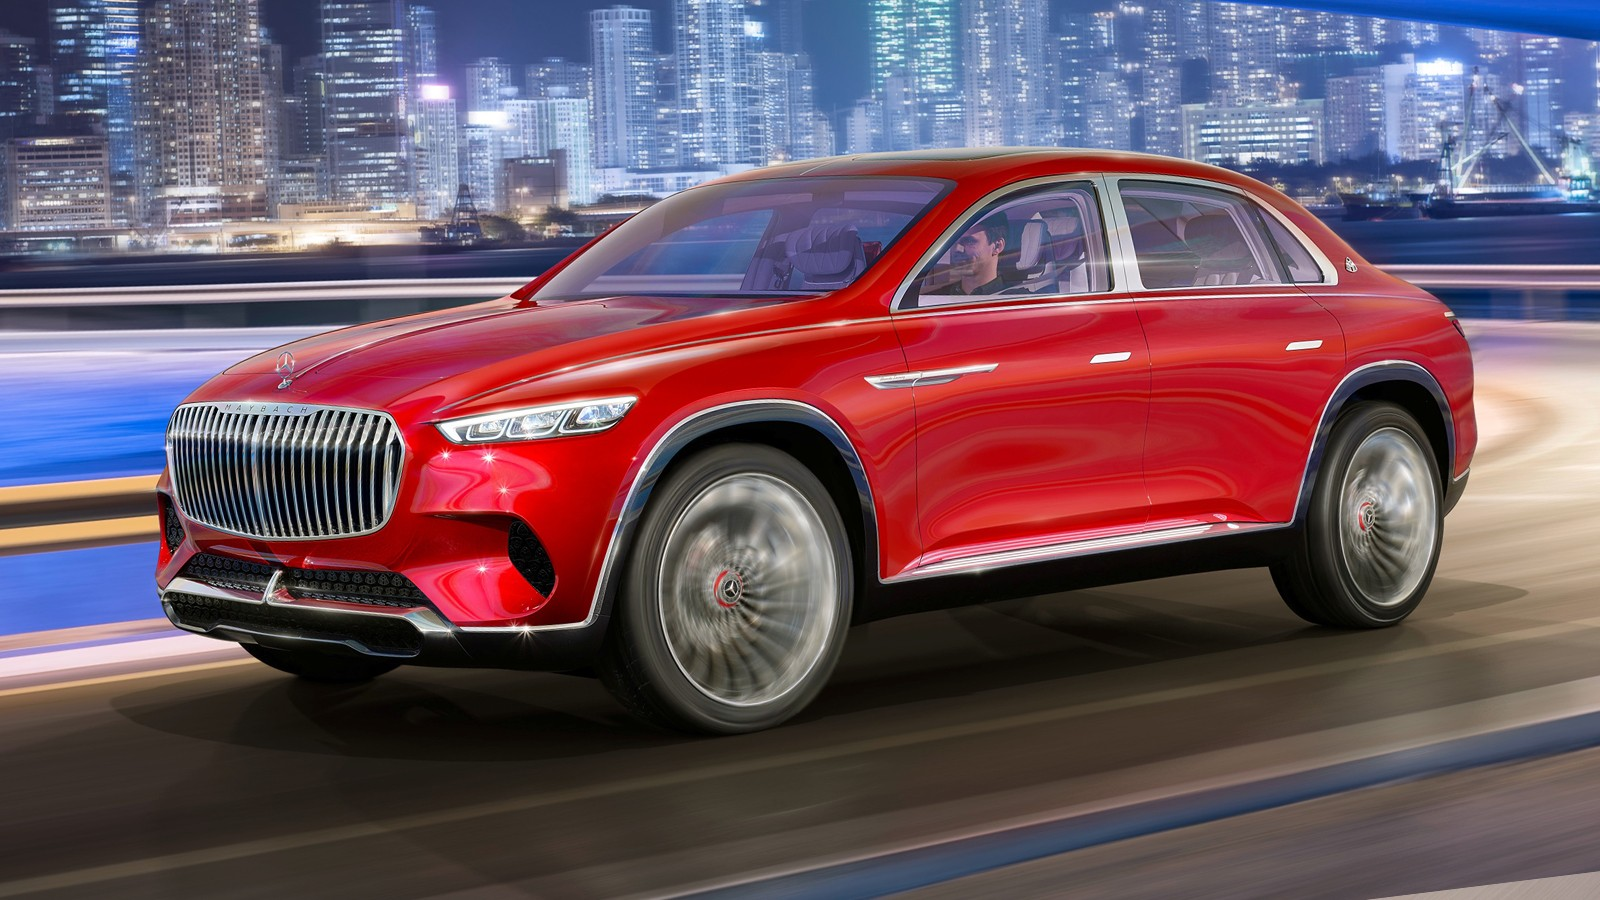 vision_mercedes-maybach_ultimate_luxury_89